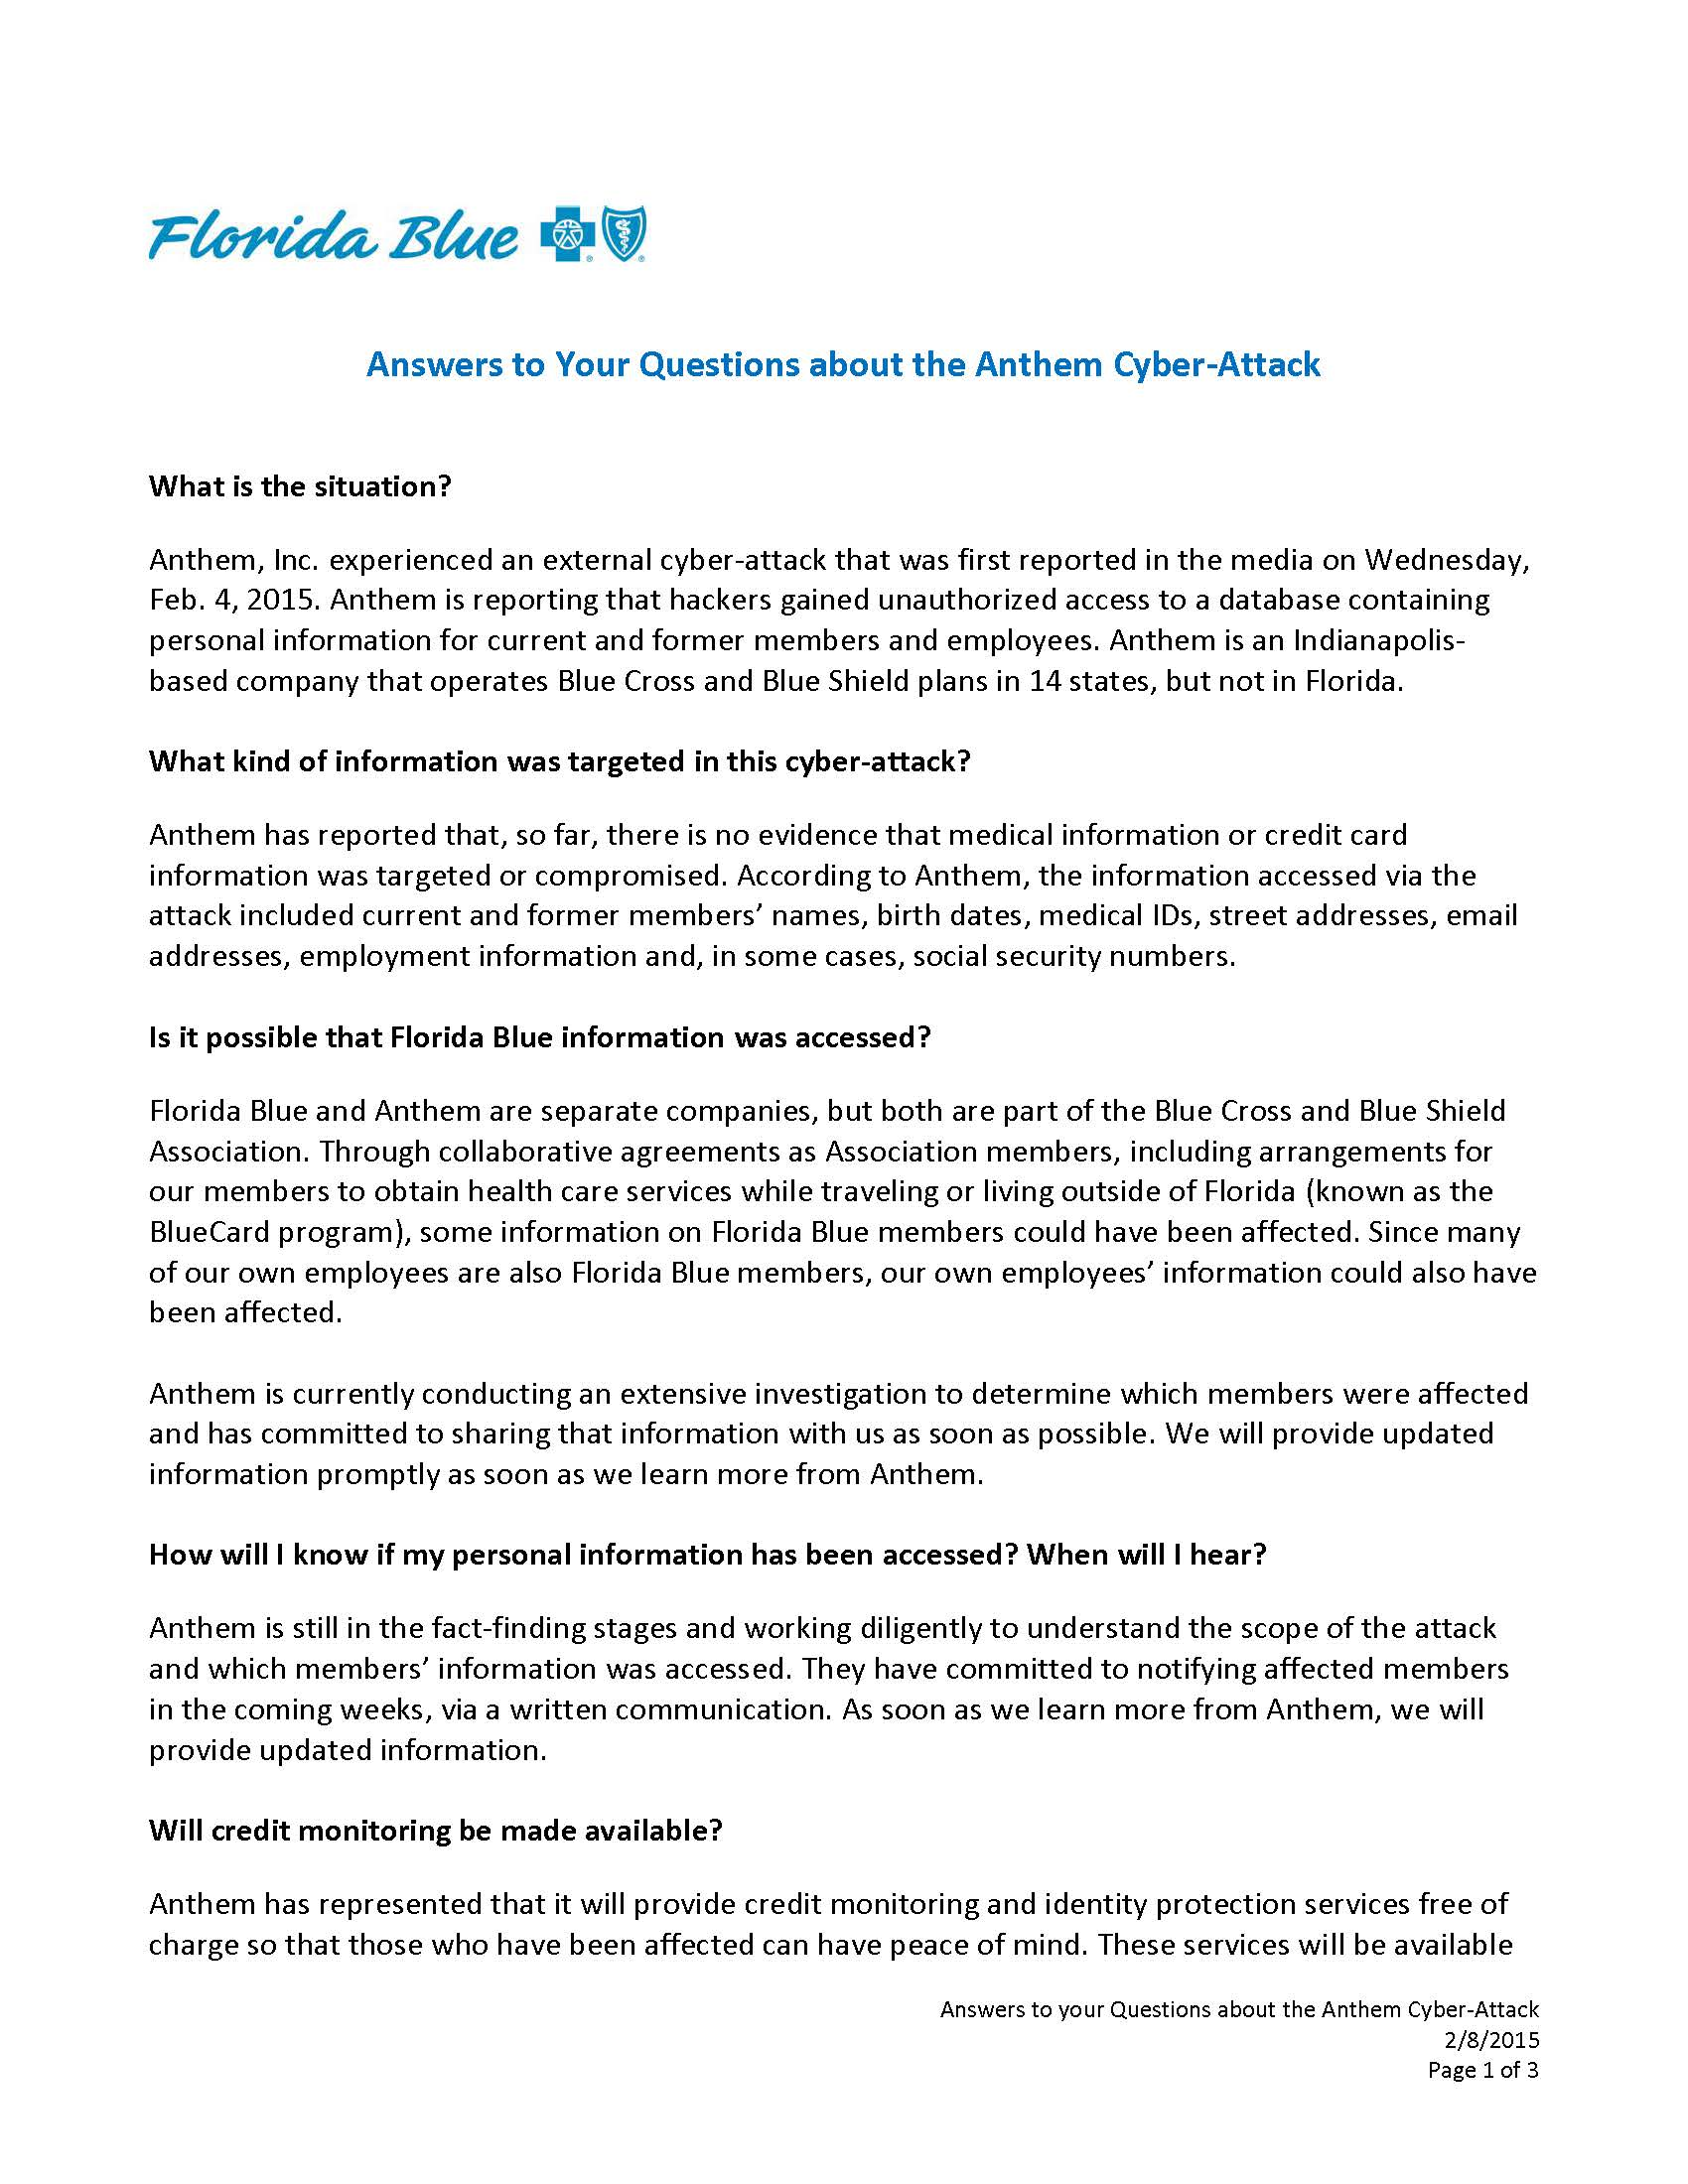 Stakeholder QA – Anthem cyber-attack FINAL_Page_1   Today